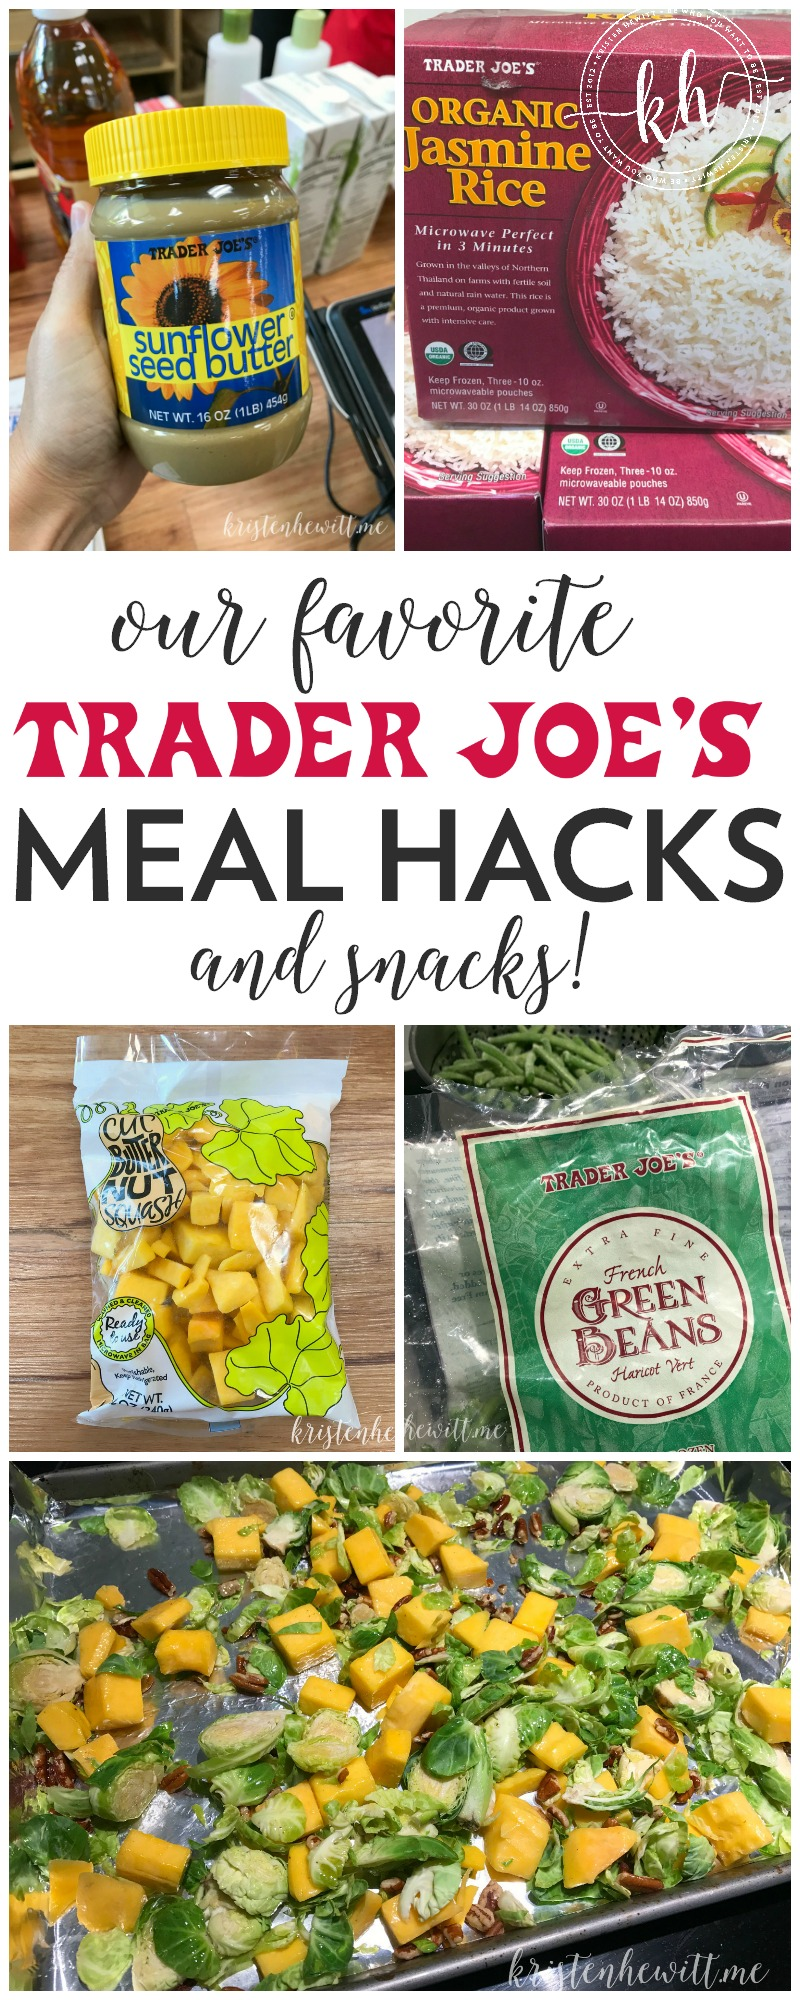 Premise Indicator Words: Our Favorite Trader Joe's Meal Hacks And Snacks